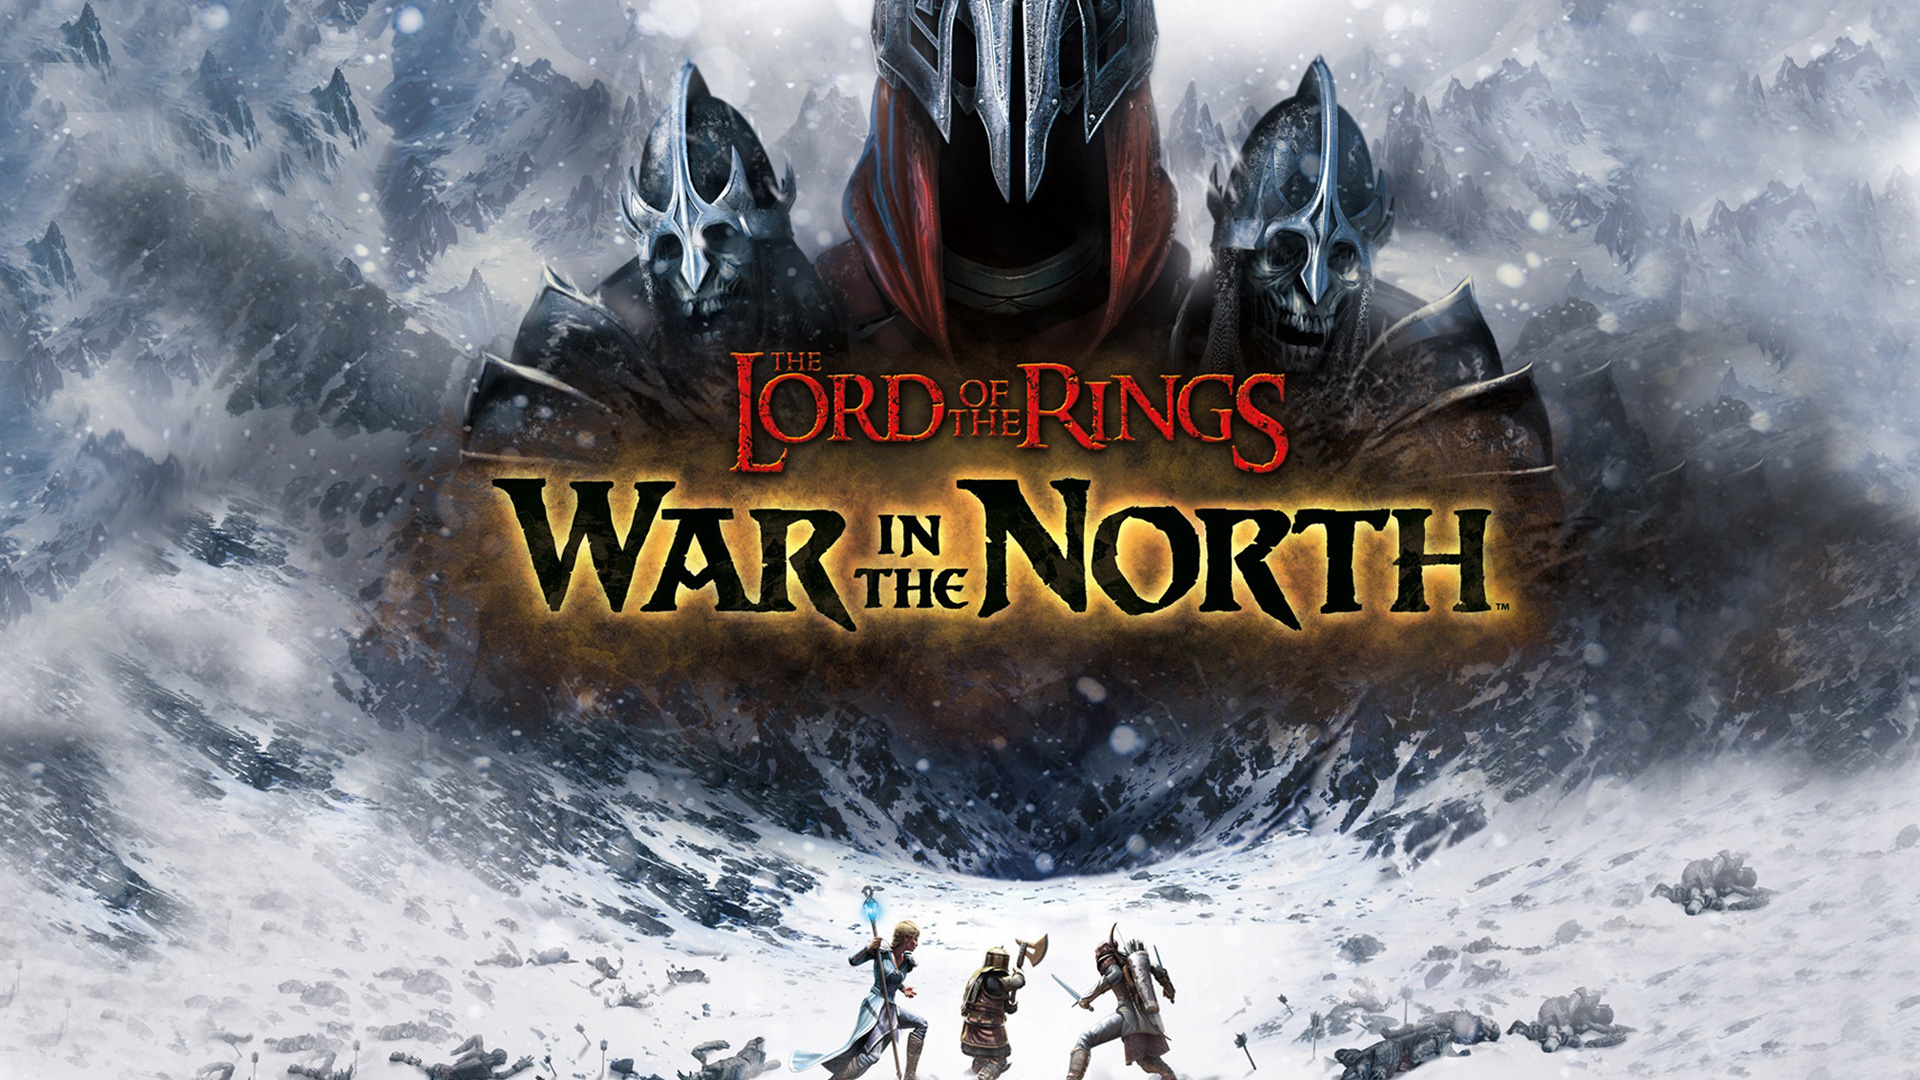 The Lord of the Rings: War in the North Wallpaper in 1920x1080